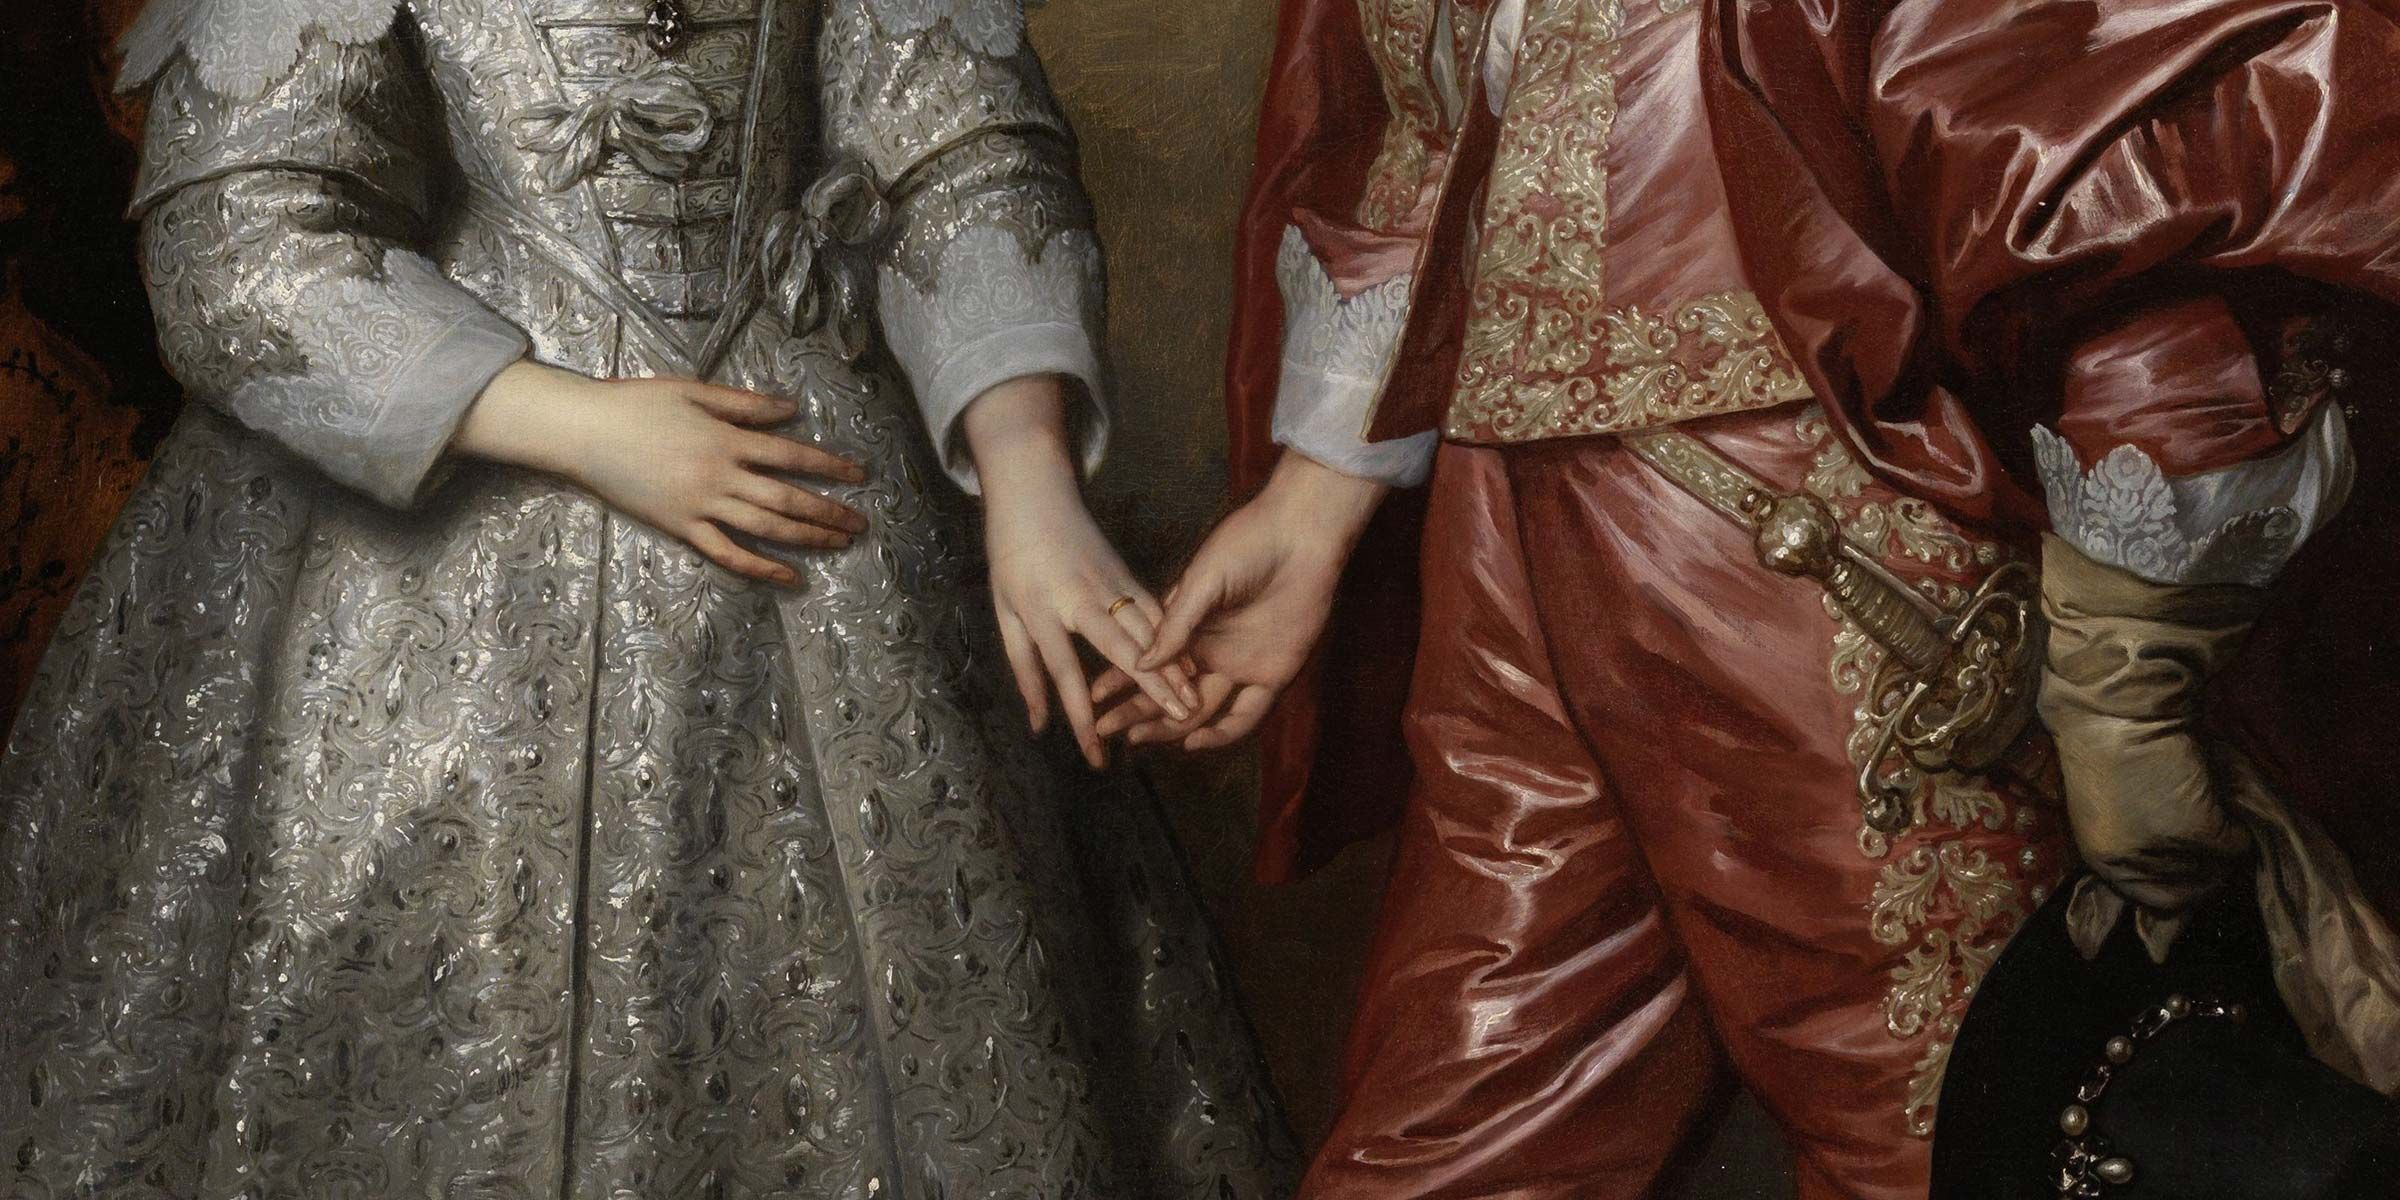 Anthony van Dyck, William II and His Bride, Mary Stuart, 1641.